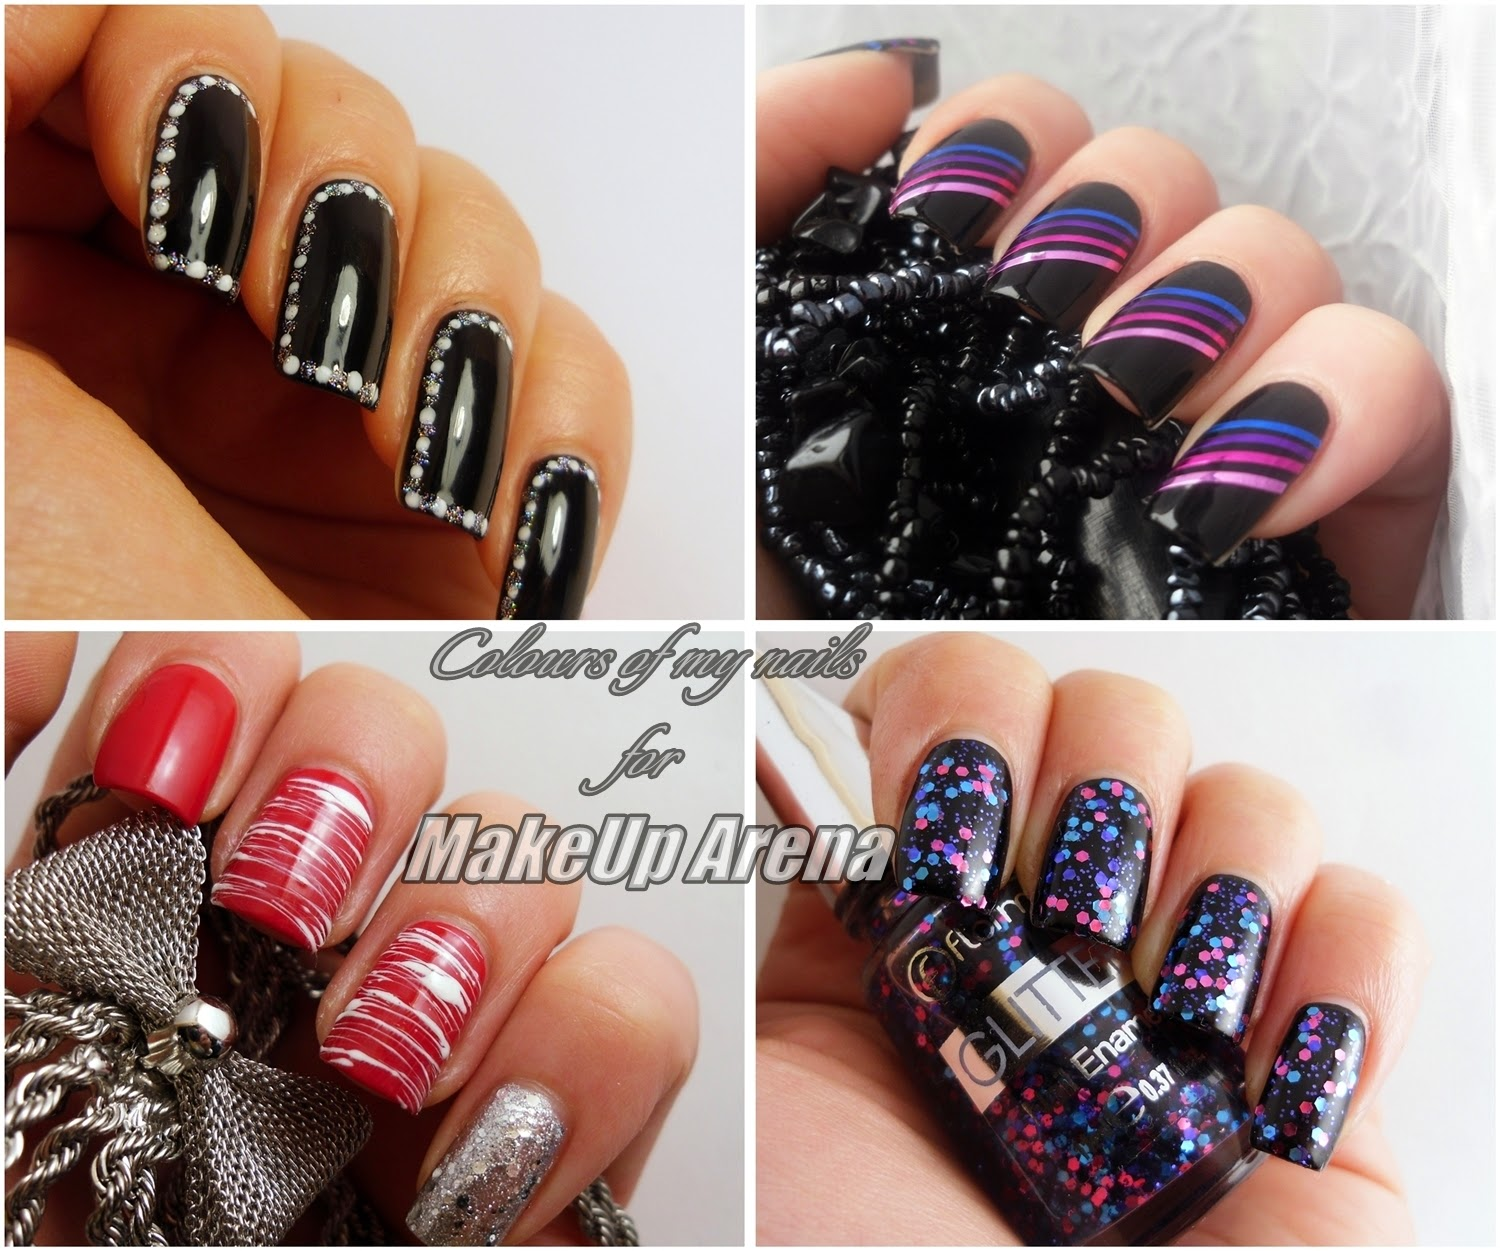 Njega noktiju by Colours of my nails